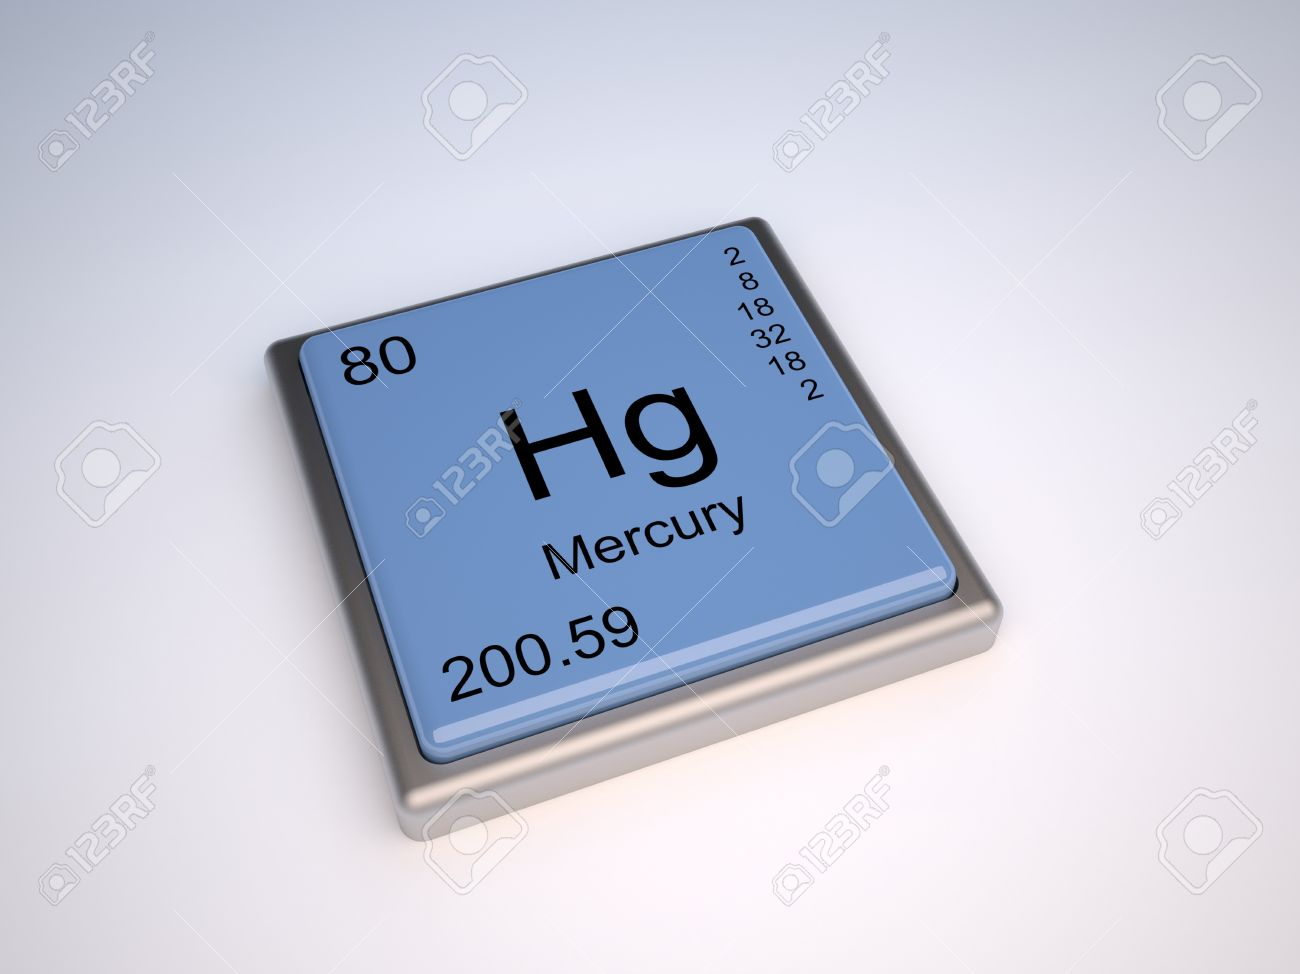 Mercury chemical element of the periodic table with symbol hg mercury chemical element of the periodic table with symbol hg stock photo 9994908 buycottarizona Gallery